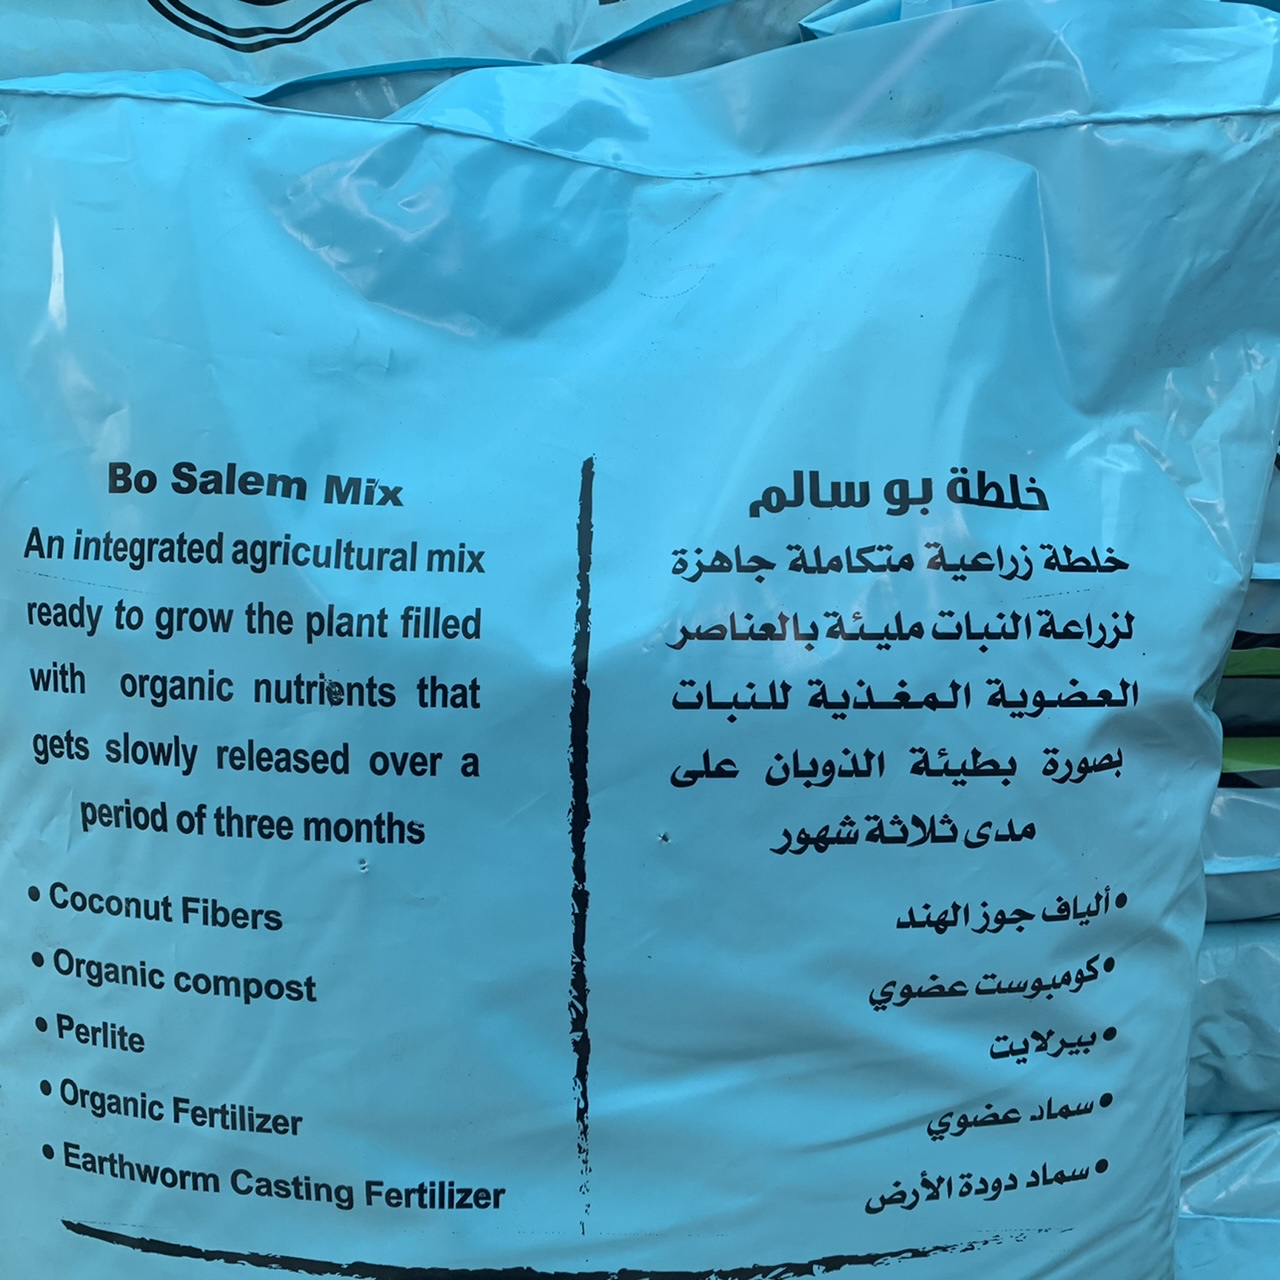 Bo Salem Organic Mix (Blue)  Soil Fertilizer Pesticide Fertilizers